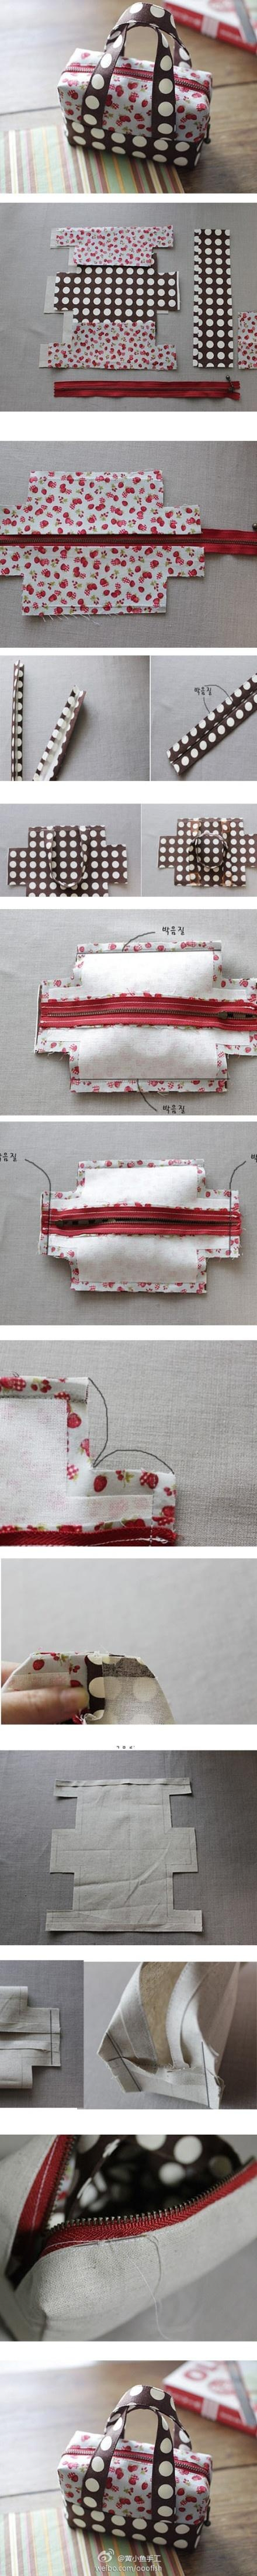 "Cute DIY Bag - simple to make, very very useful in all sizes. Great for travel, makeup bags, ""in-purse"" bags, etc."